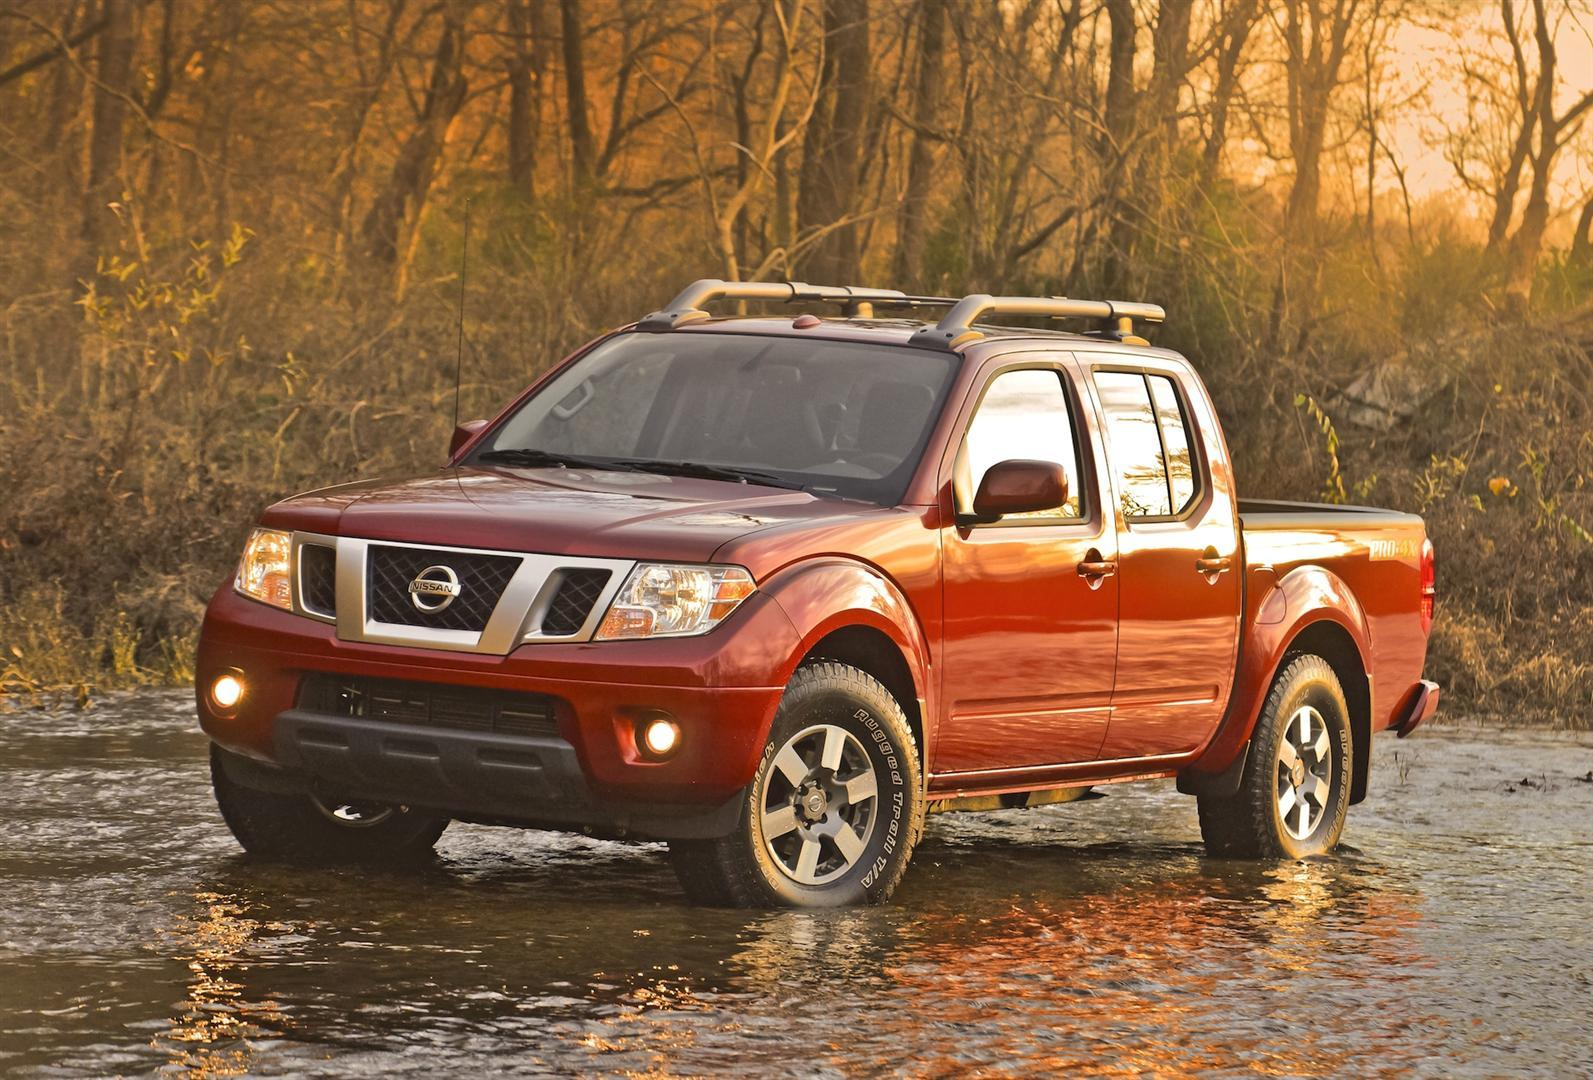 2019 Nissan Frontier Reliability and Gas Mileage lbft Informations